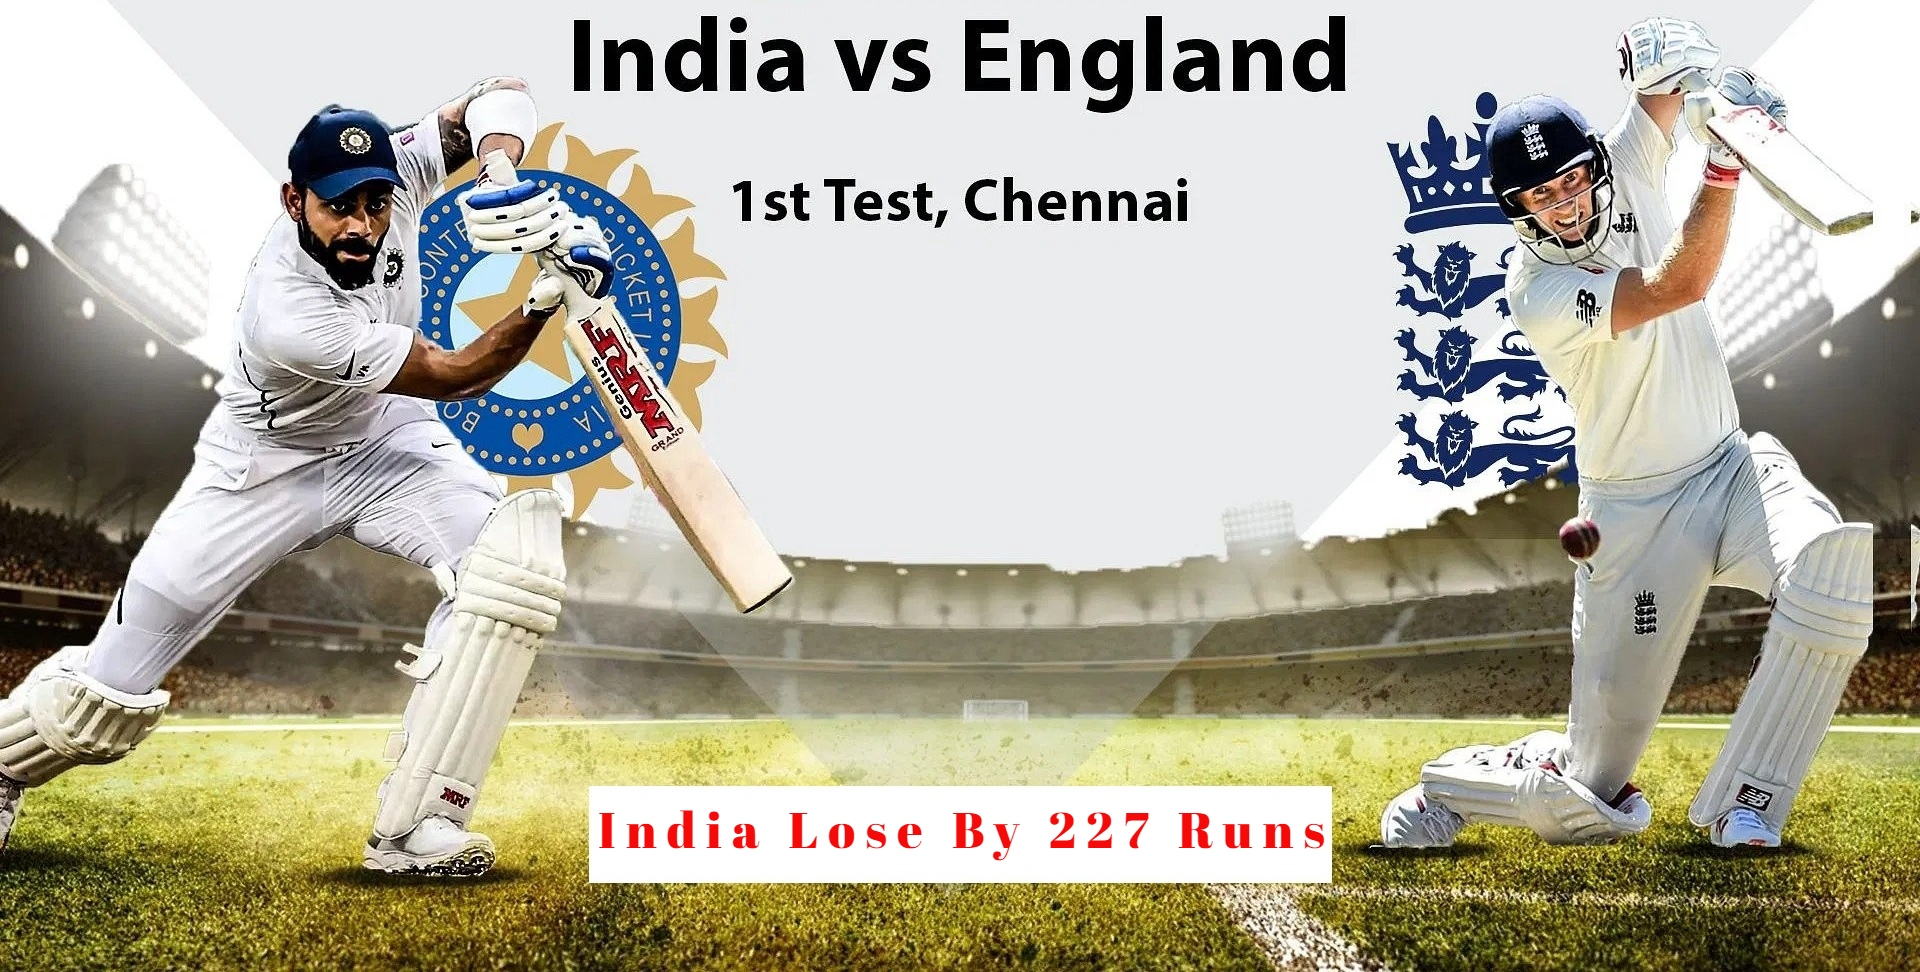 India Outplayed: Lose First Test By 227 Rums